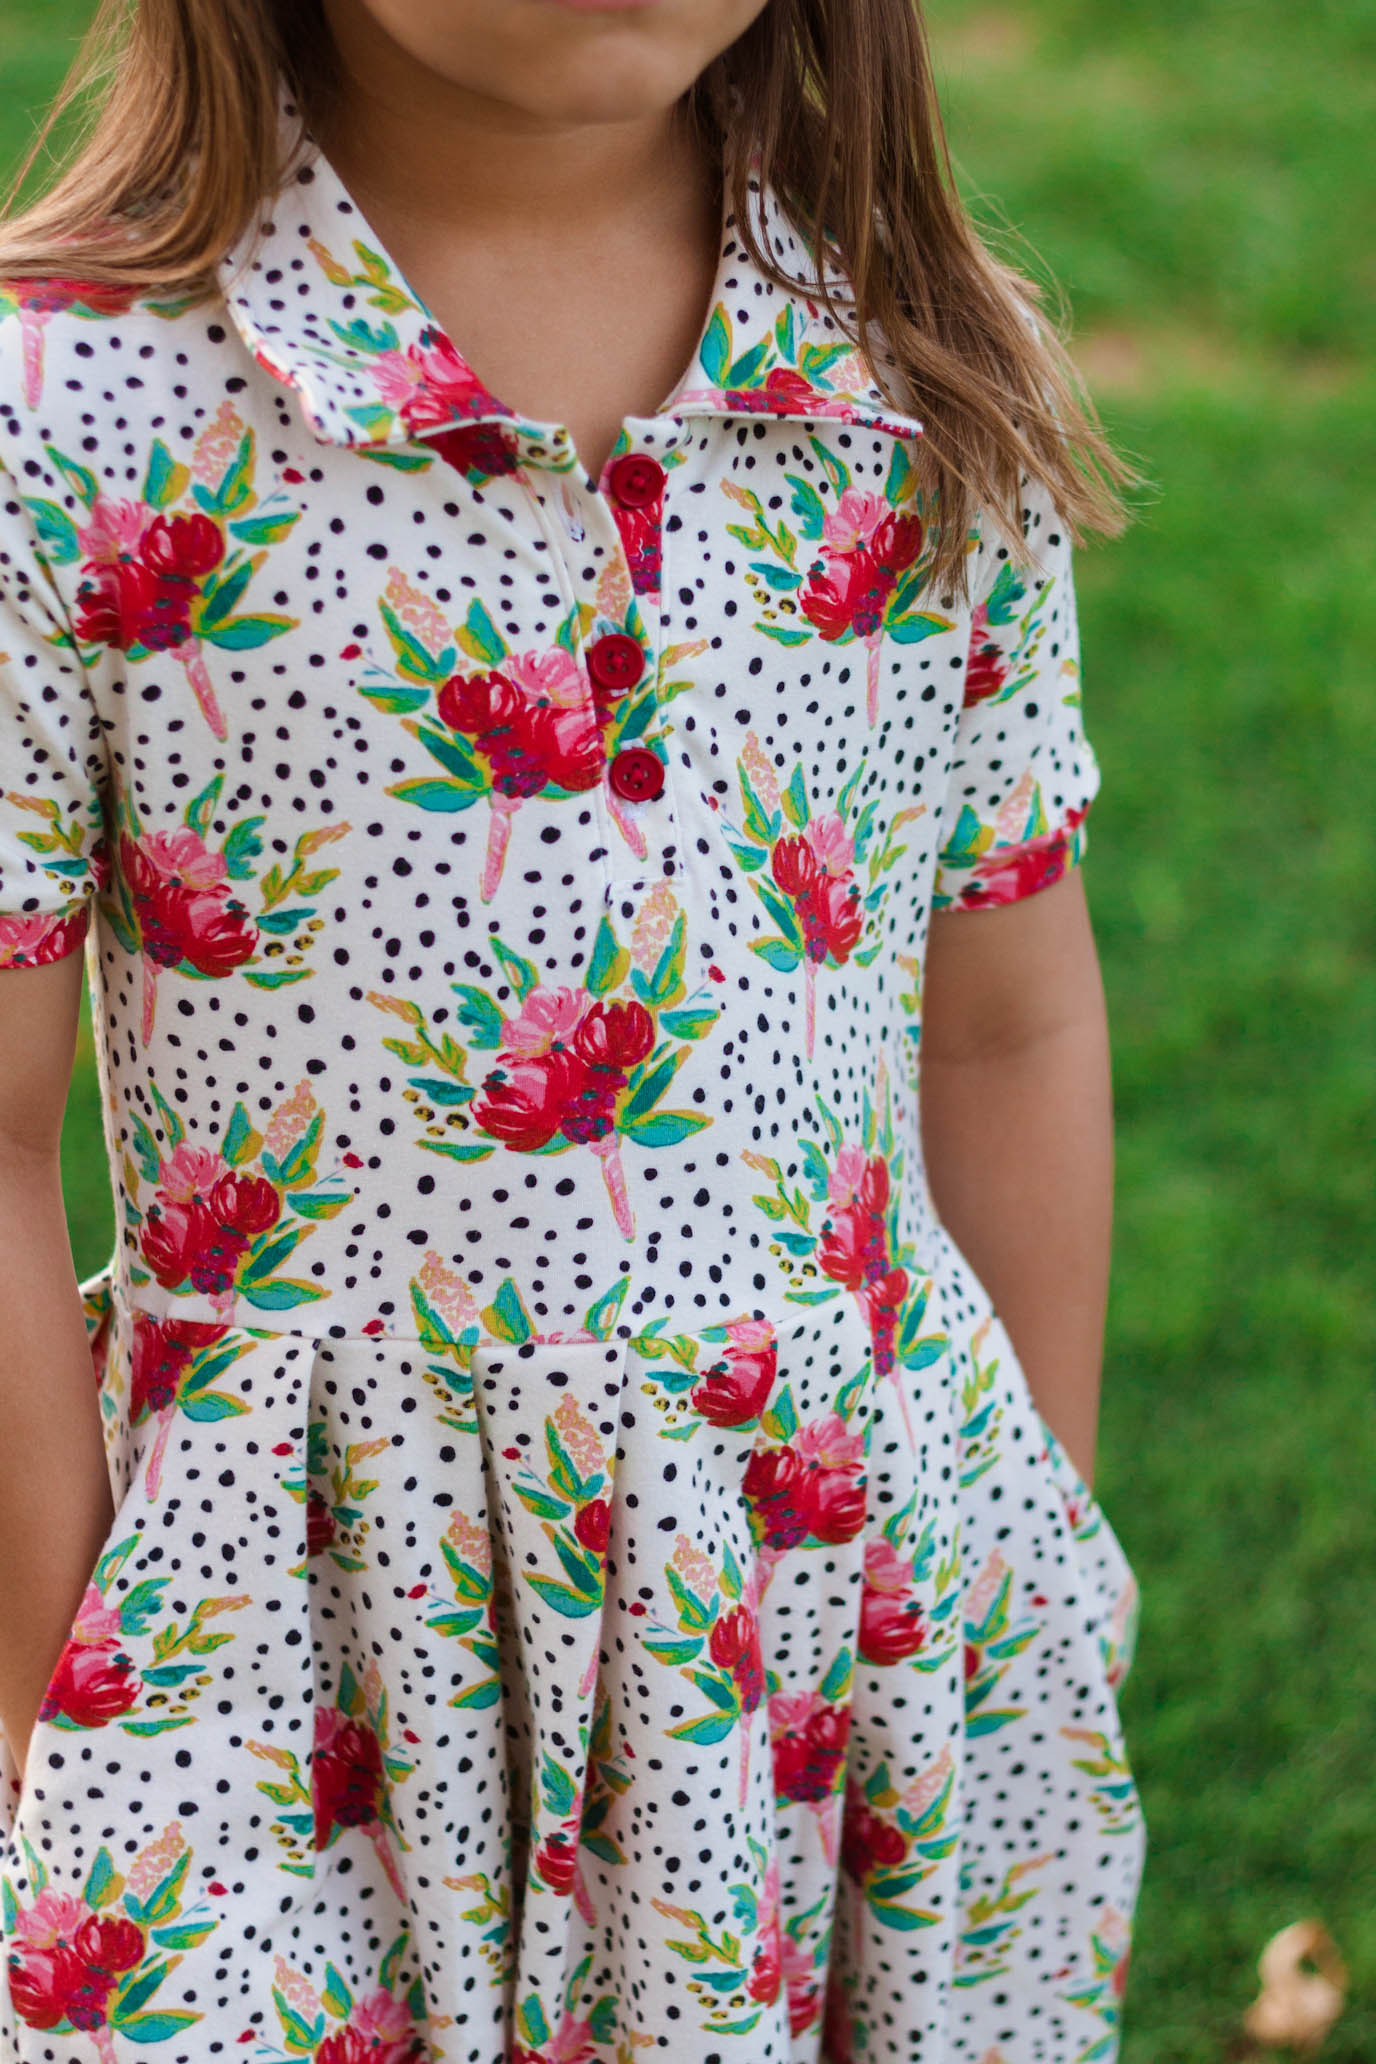 Polina's Uniform Polo Top and Dress Sizes 2T to 14 Kids PDF Pattern